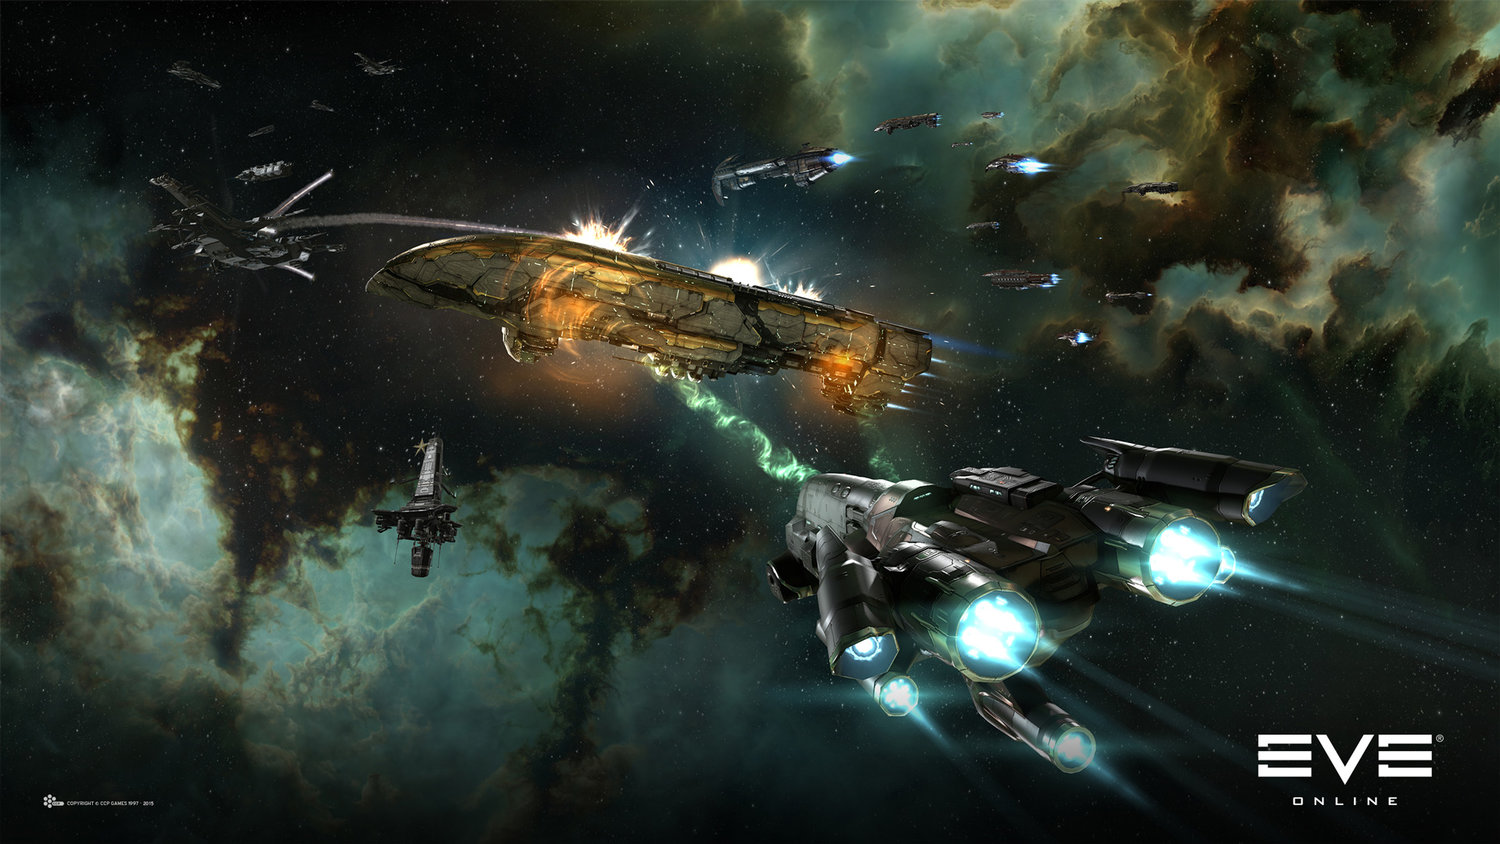 EVE ONLINE Offers Free To Play Option — GameTyrant